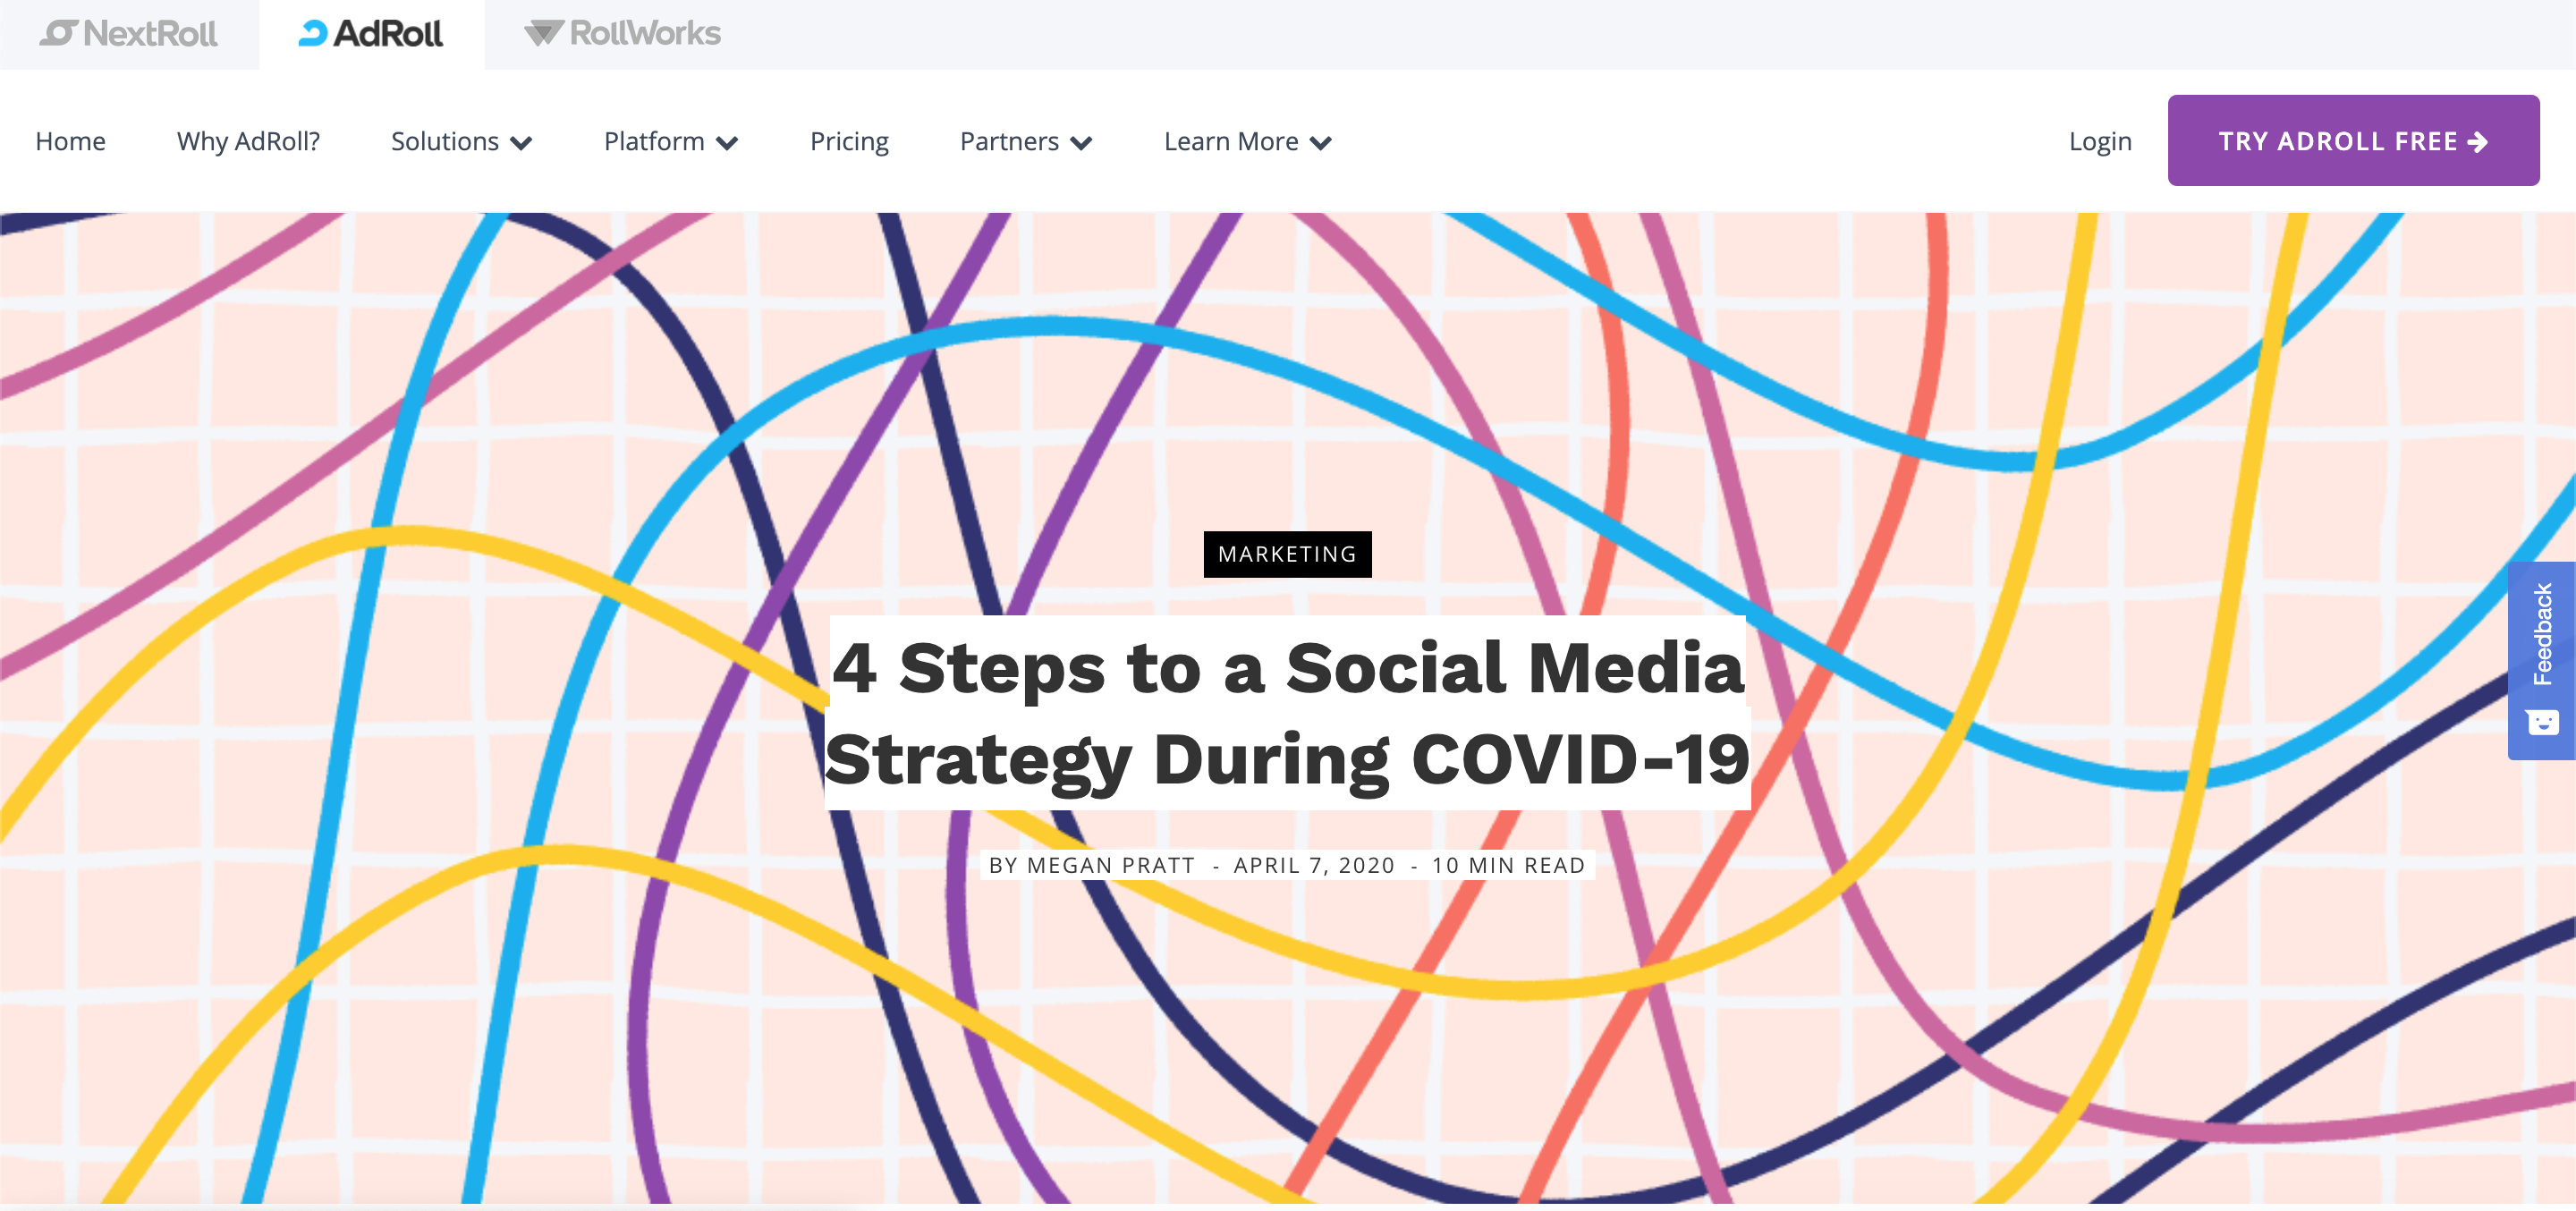 4 Steps to a Social Media Strategy During COVID-19 by AdRoll